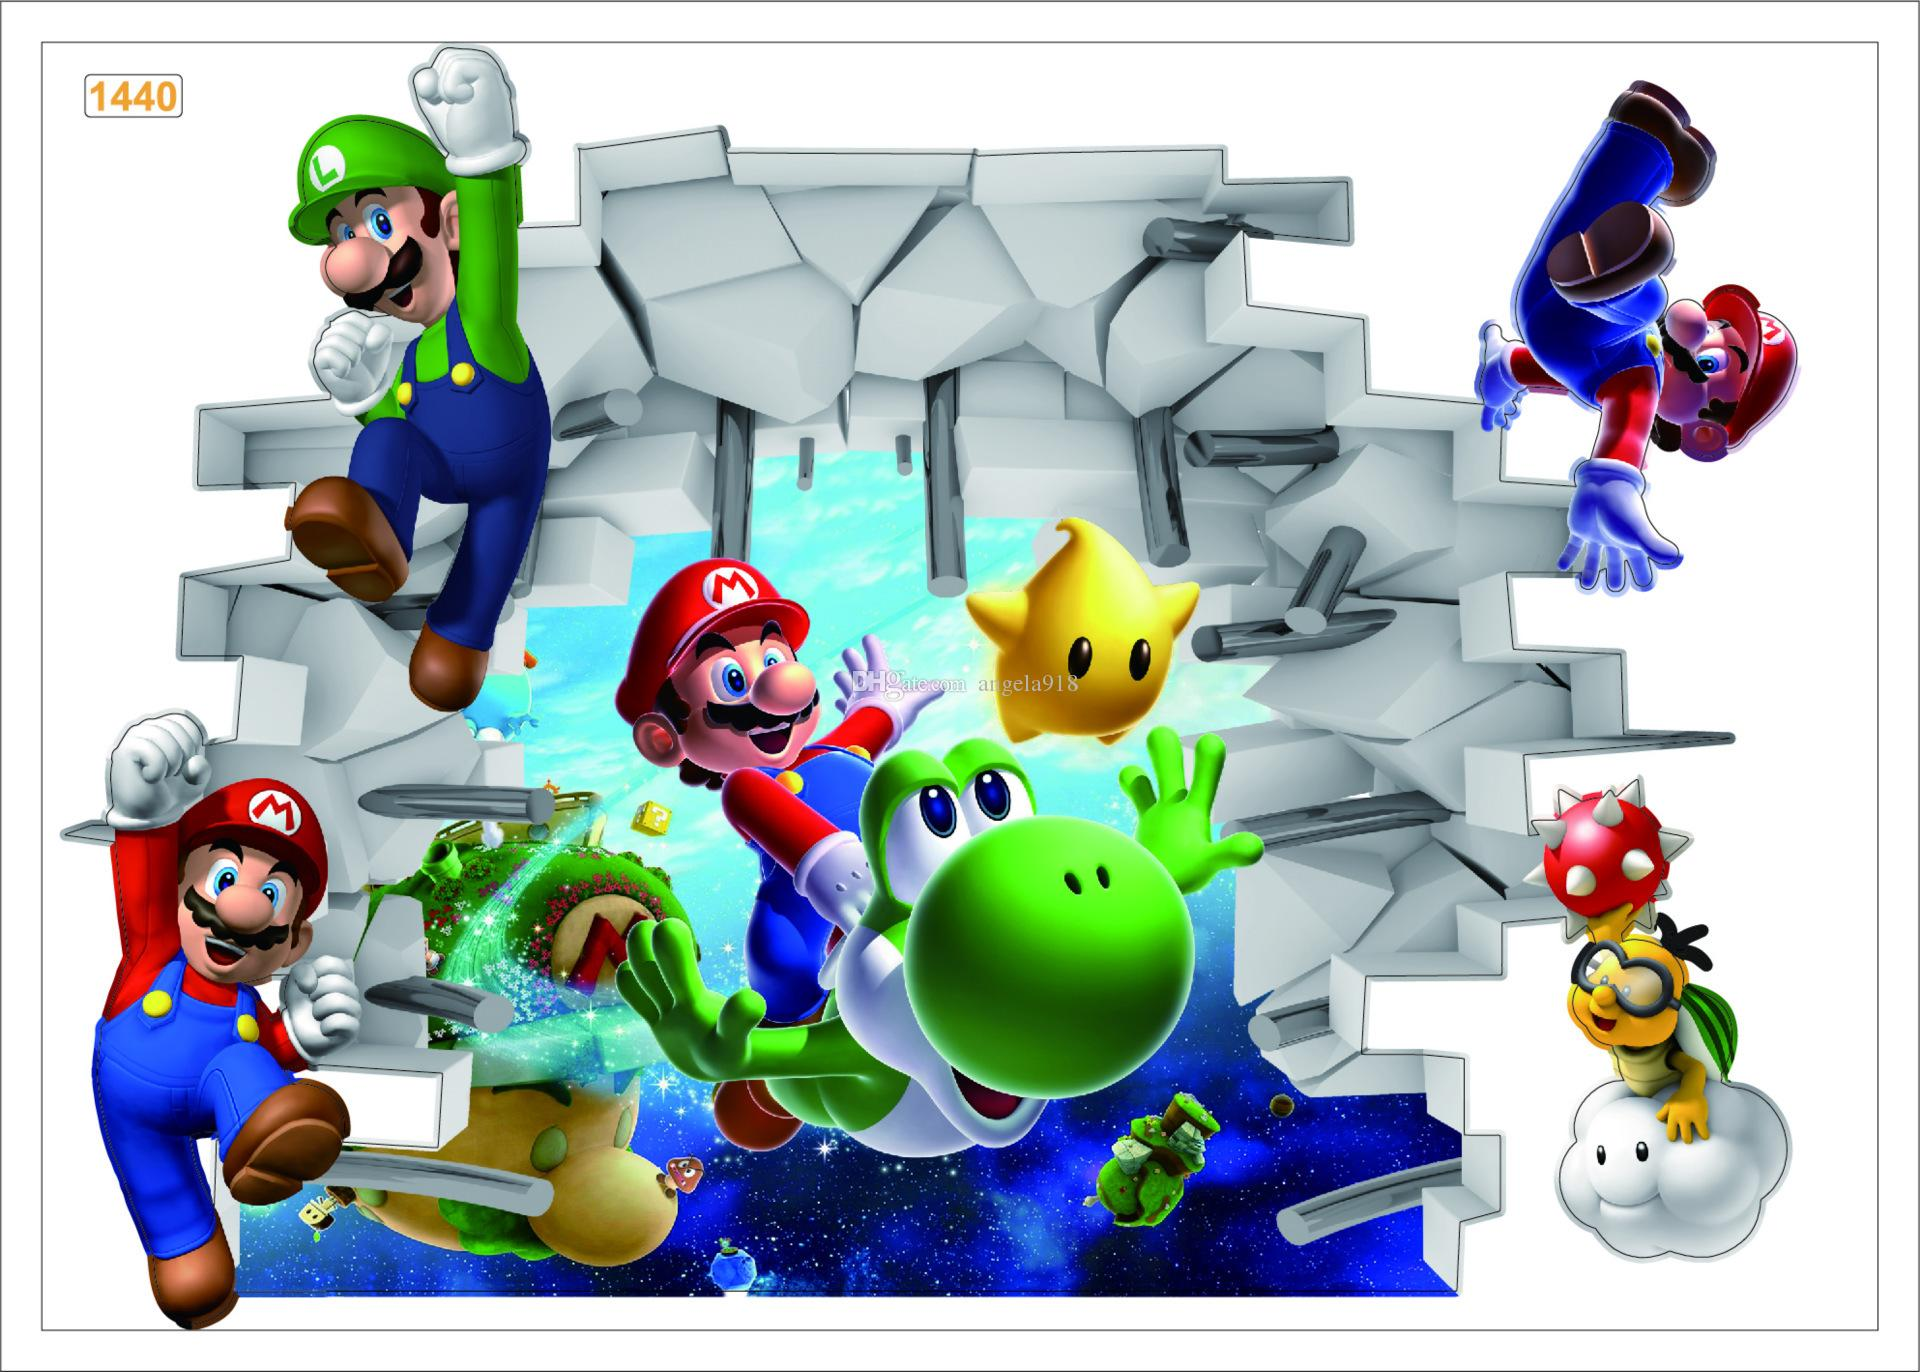 Products Show Super Mario Galaxy 2 693924 Hd